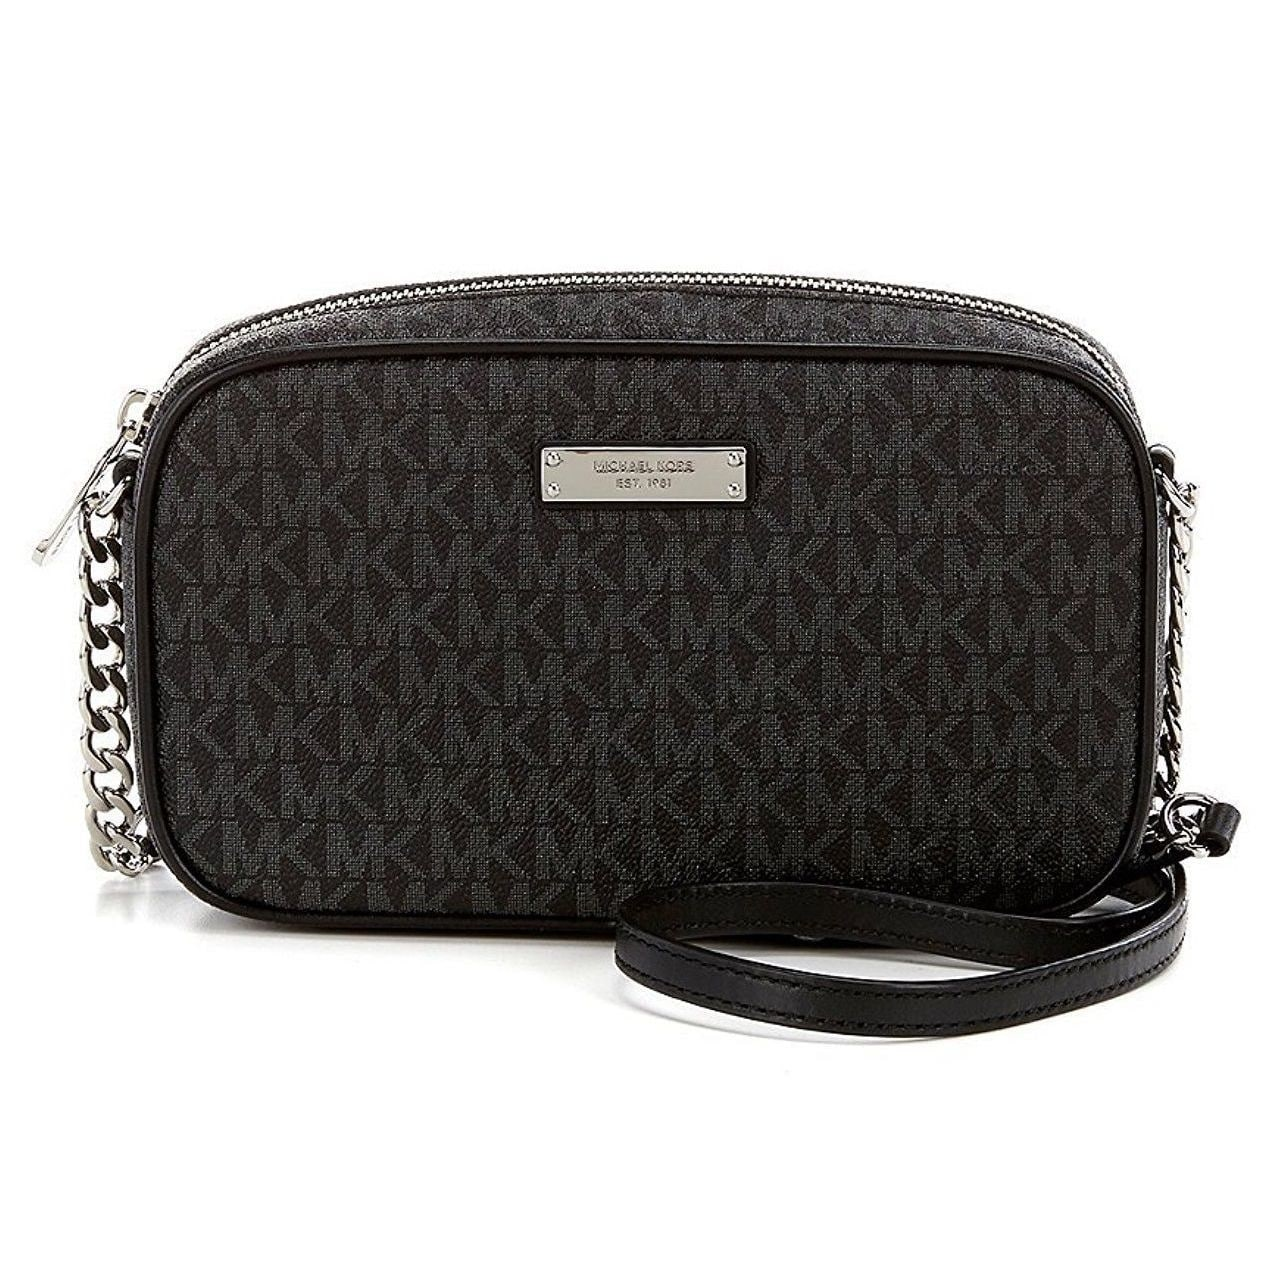 Michael Kors Signature Jet Set Black Large East West Cros...